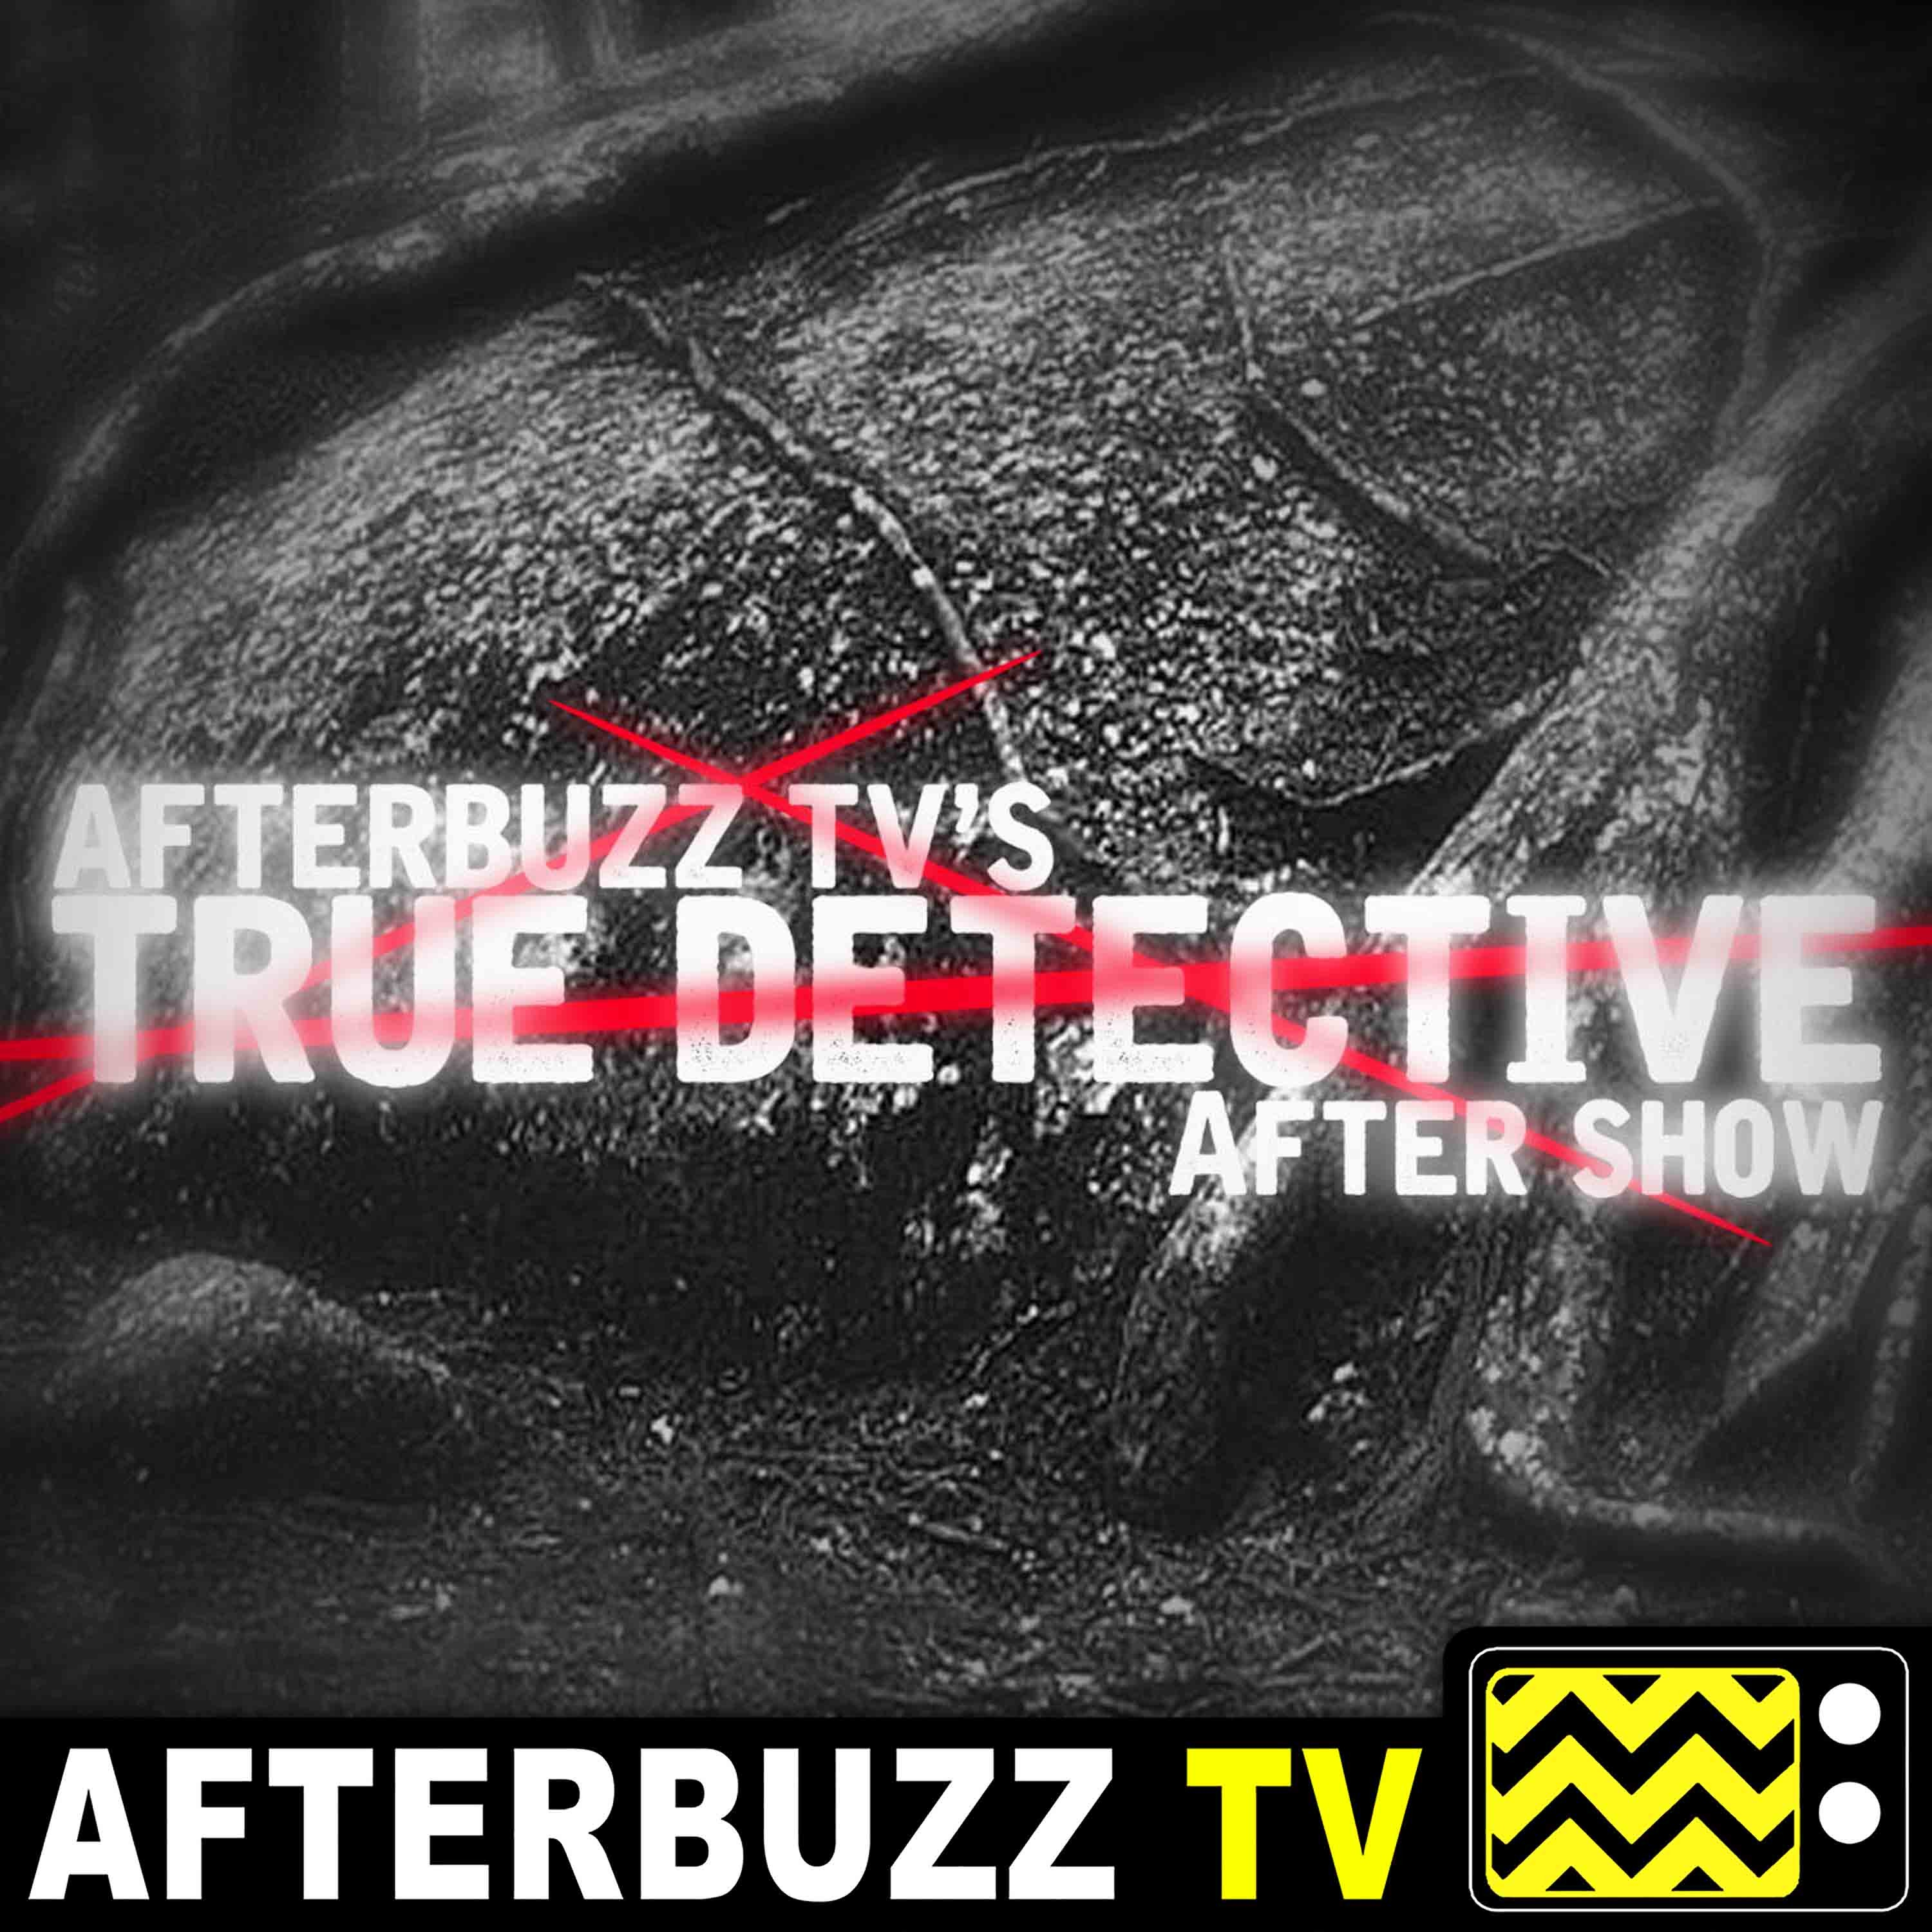 True Detective S:2 | Black Maps and Hotel Rooms E:7 | AfterBuzz TV AfterShow